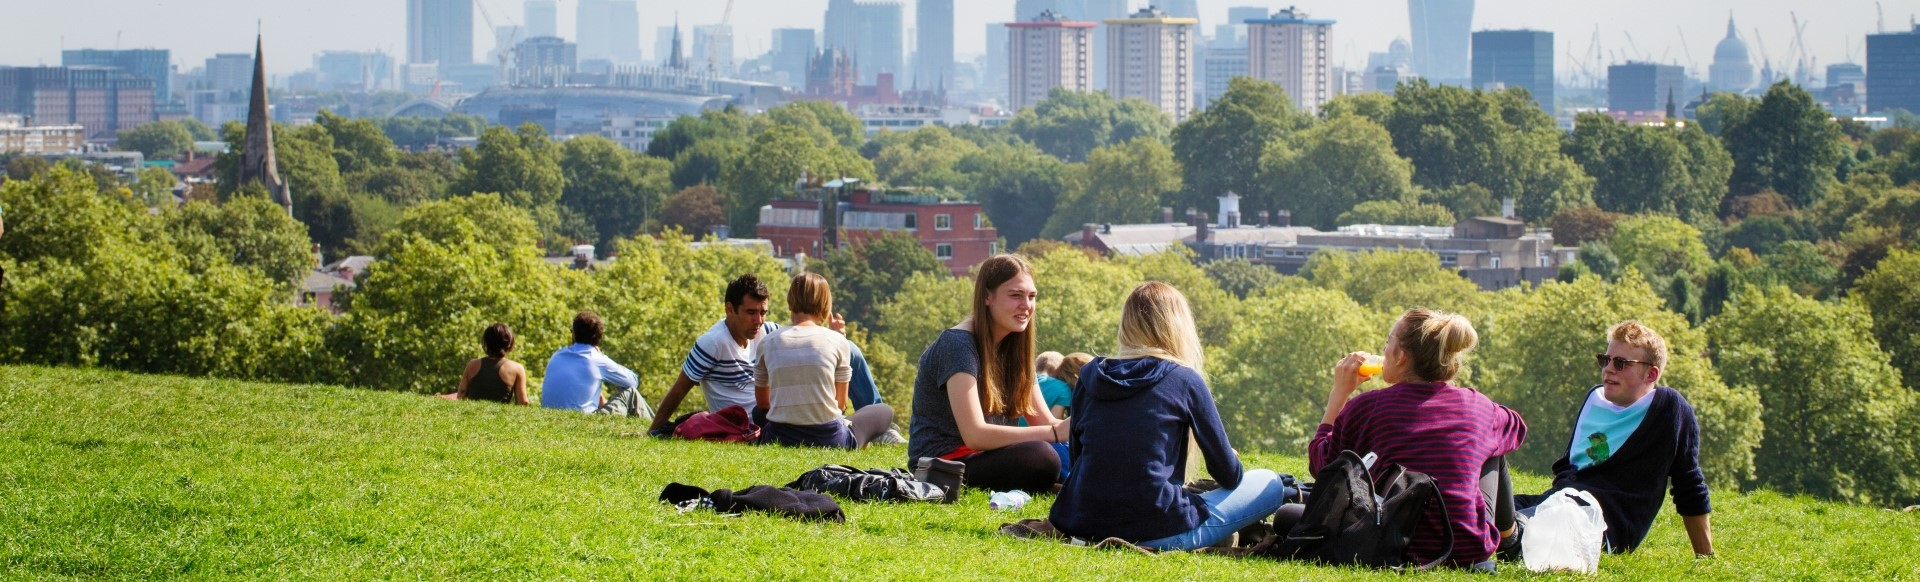 People sitting down in a park